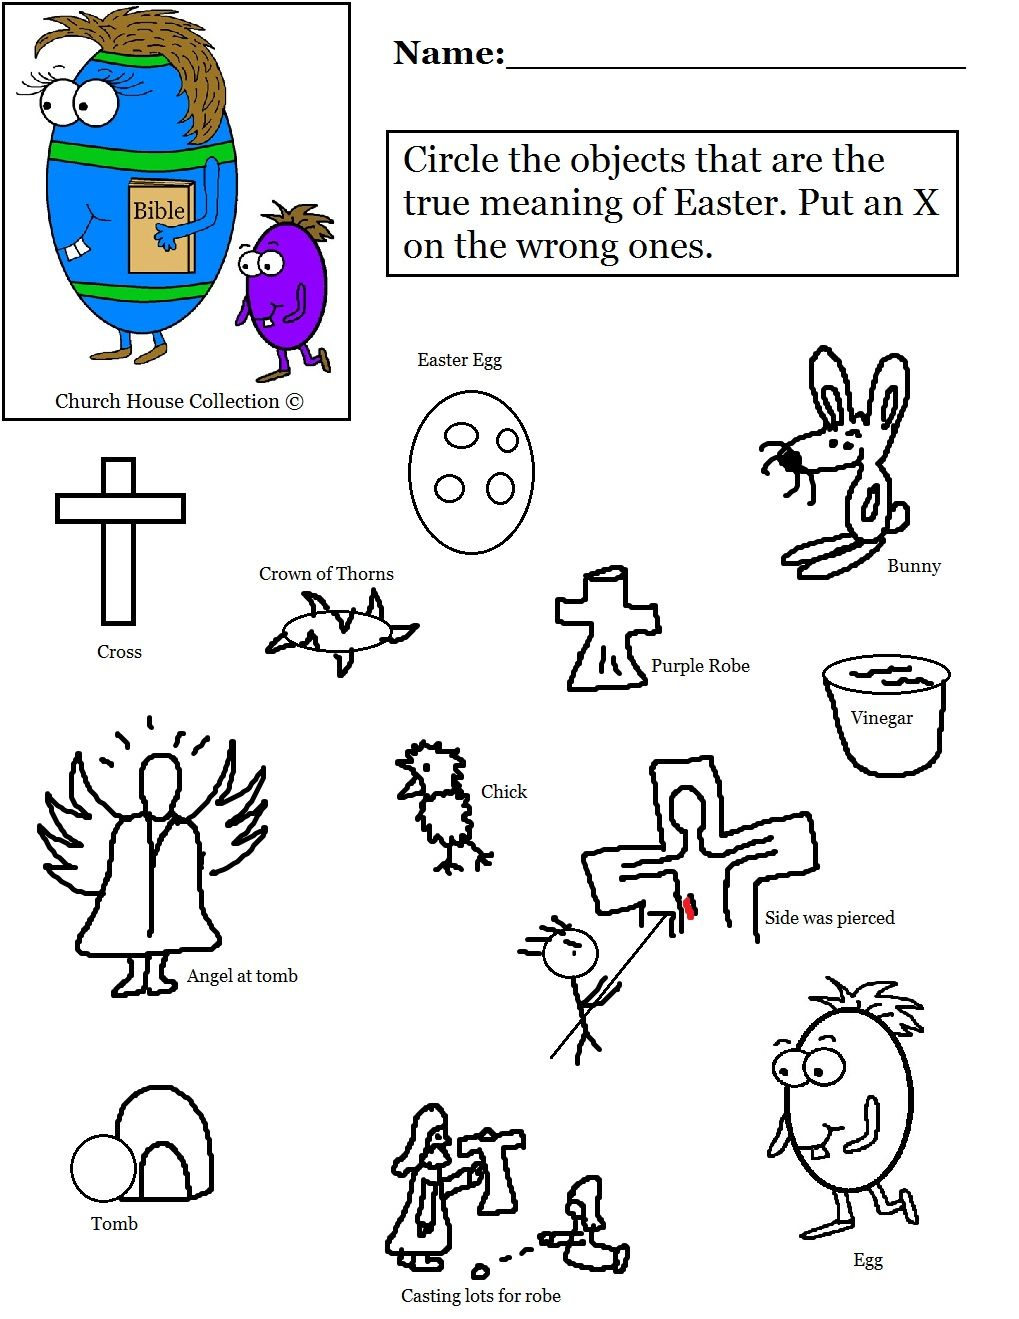 church house collection blog easter egg with bible worksheet teaching preschoolers. Black Bedroom Furniture Sets. Home Design Ideas